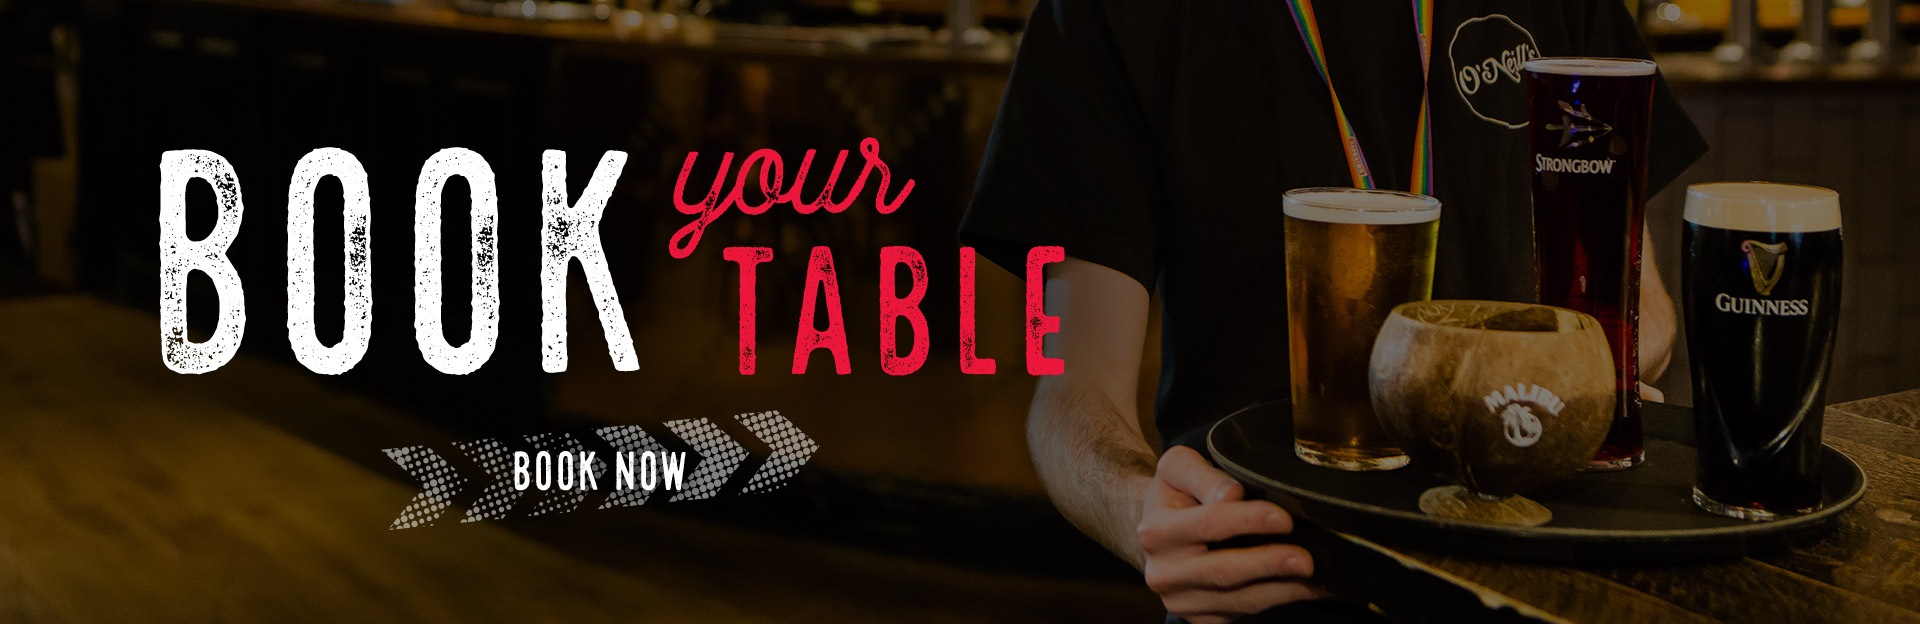 bookyourtable-banner.jpg